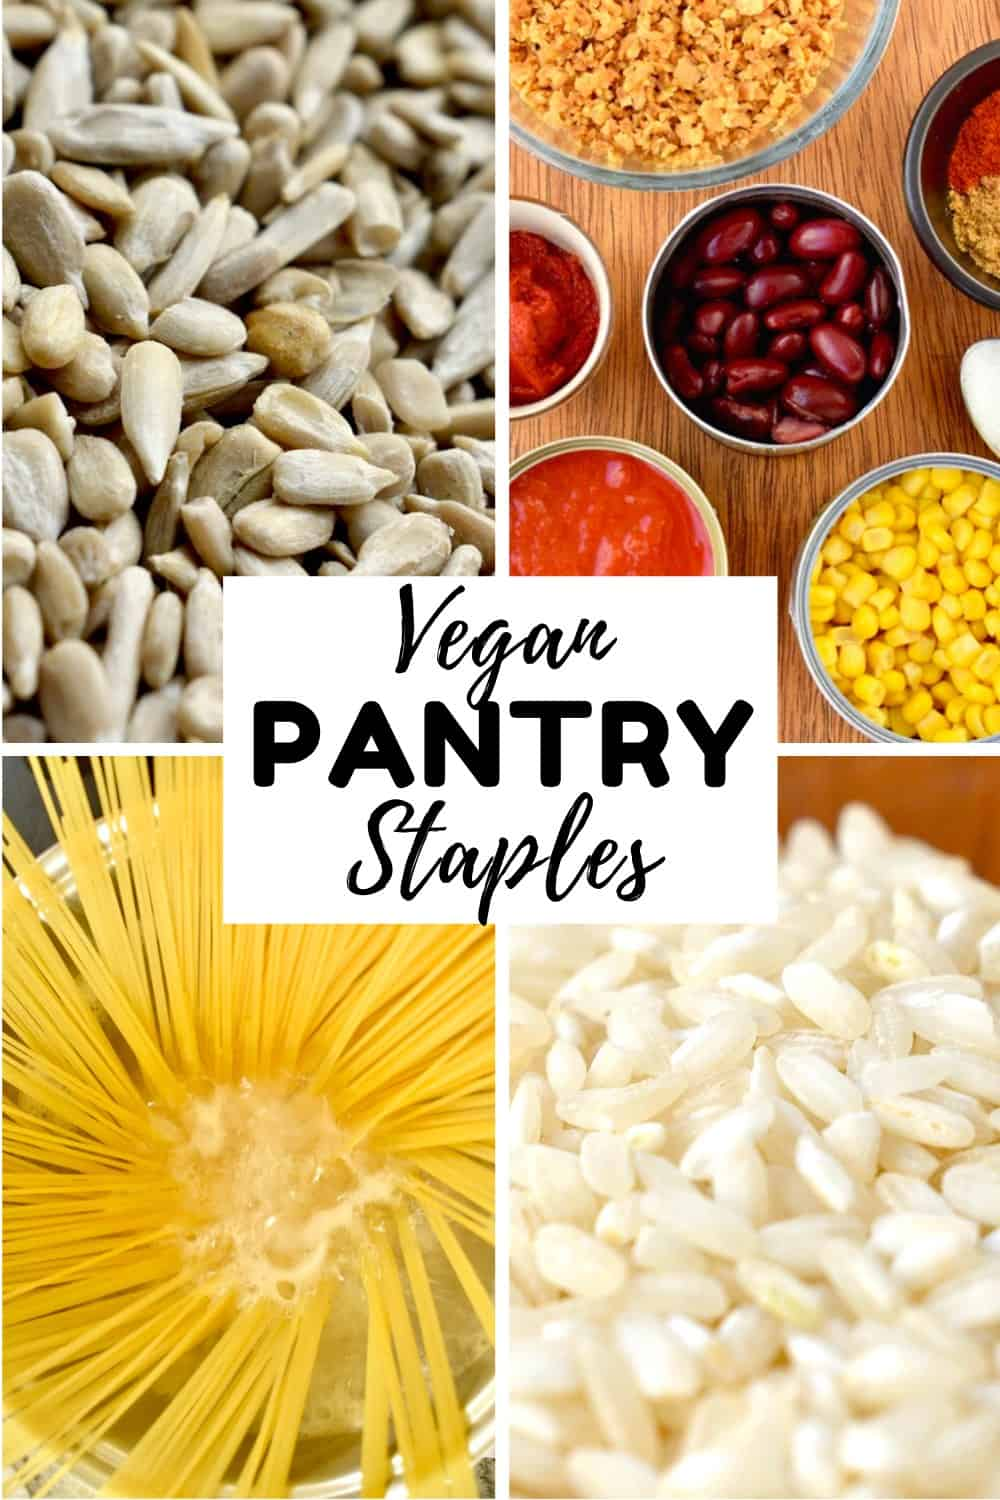 Sunflower seeds, canned vegetables, pasta and rice in a collage. The text reads Vegan Pantry Staples.